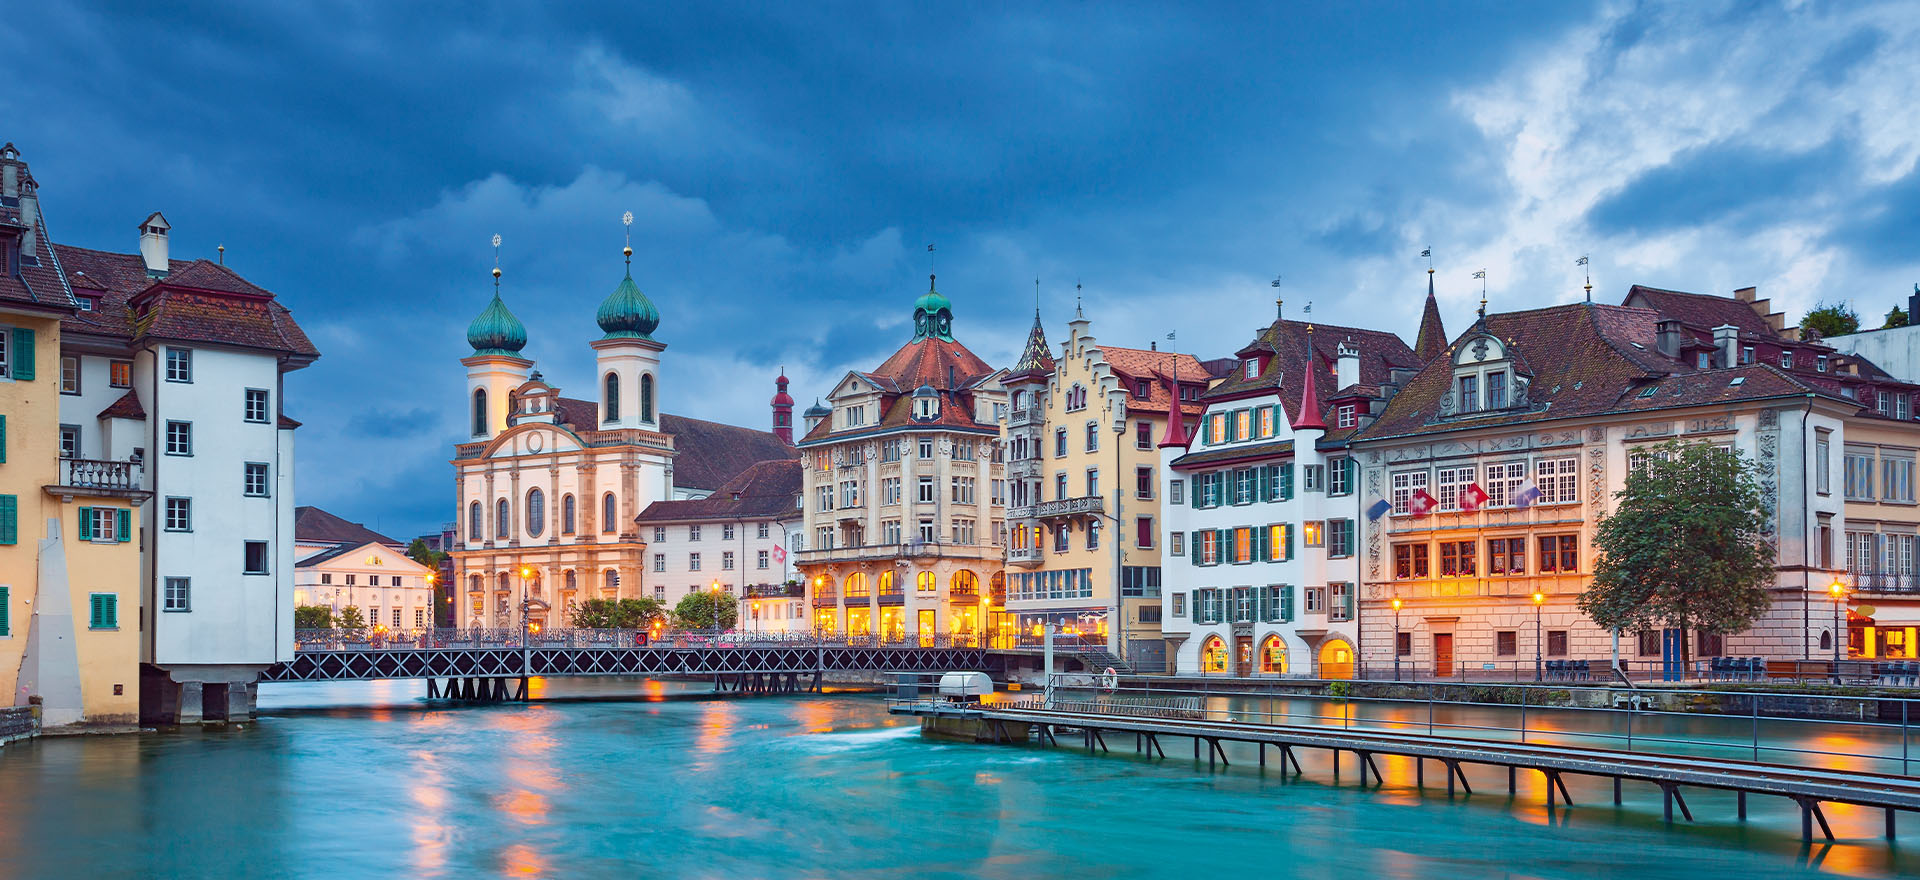 Lucerne | Rhine river | switzerland | River Cruises in Switzerland